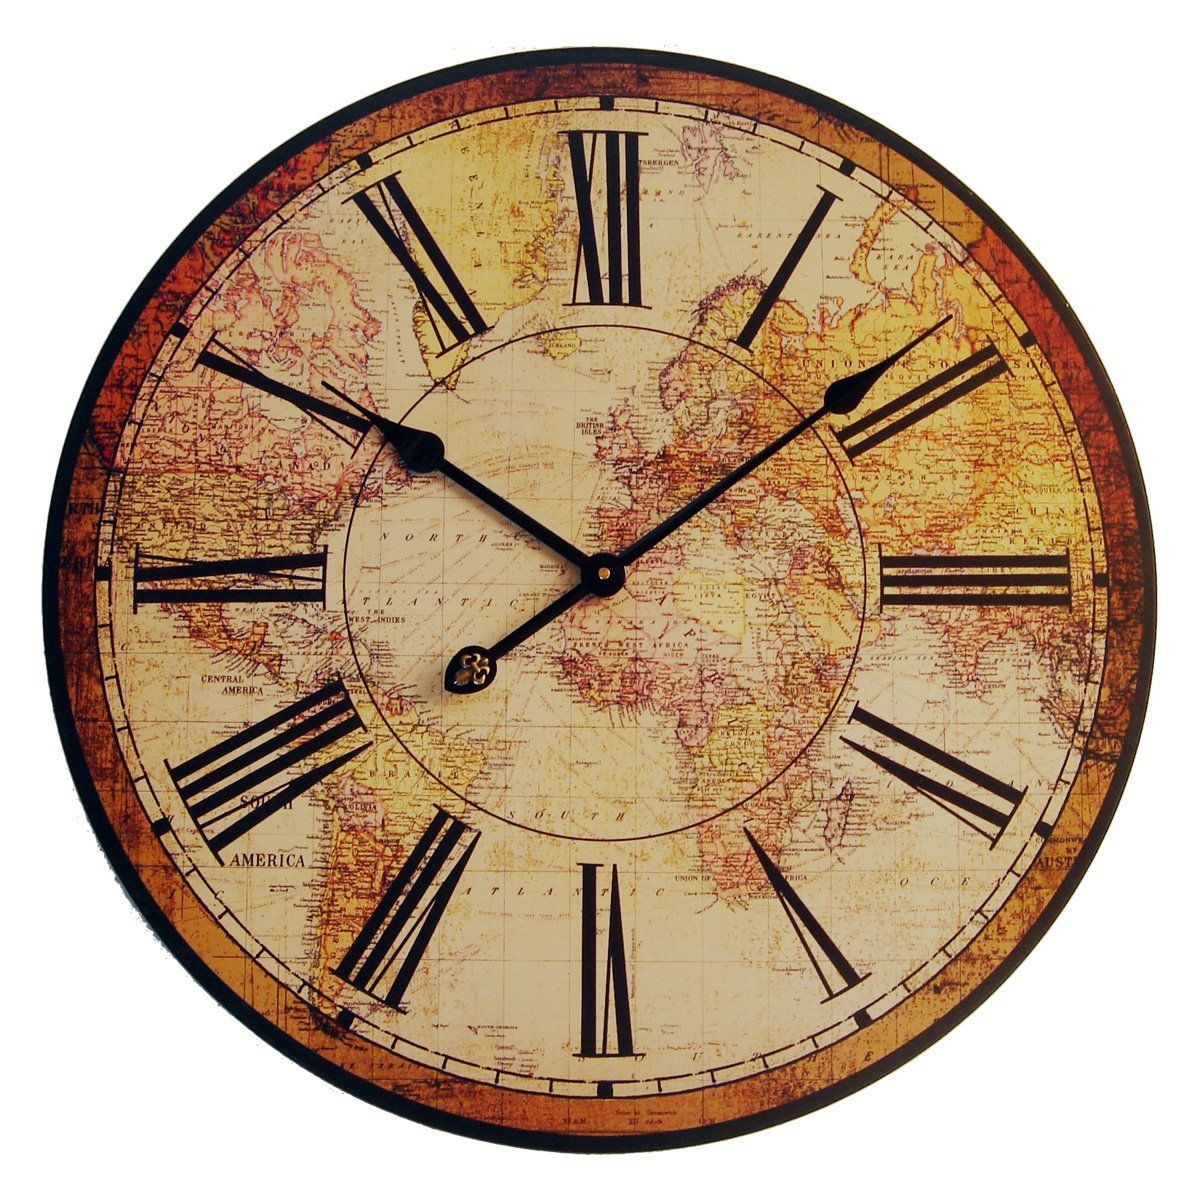 vinatge clock | Vintage Antique World Map Clock | HomeClocks.com ...